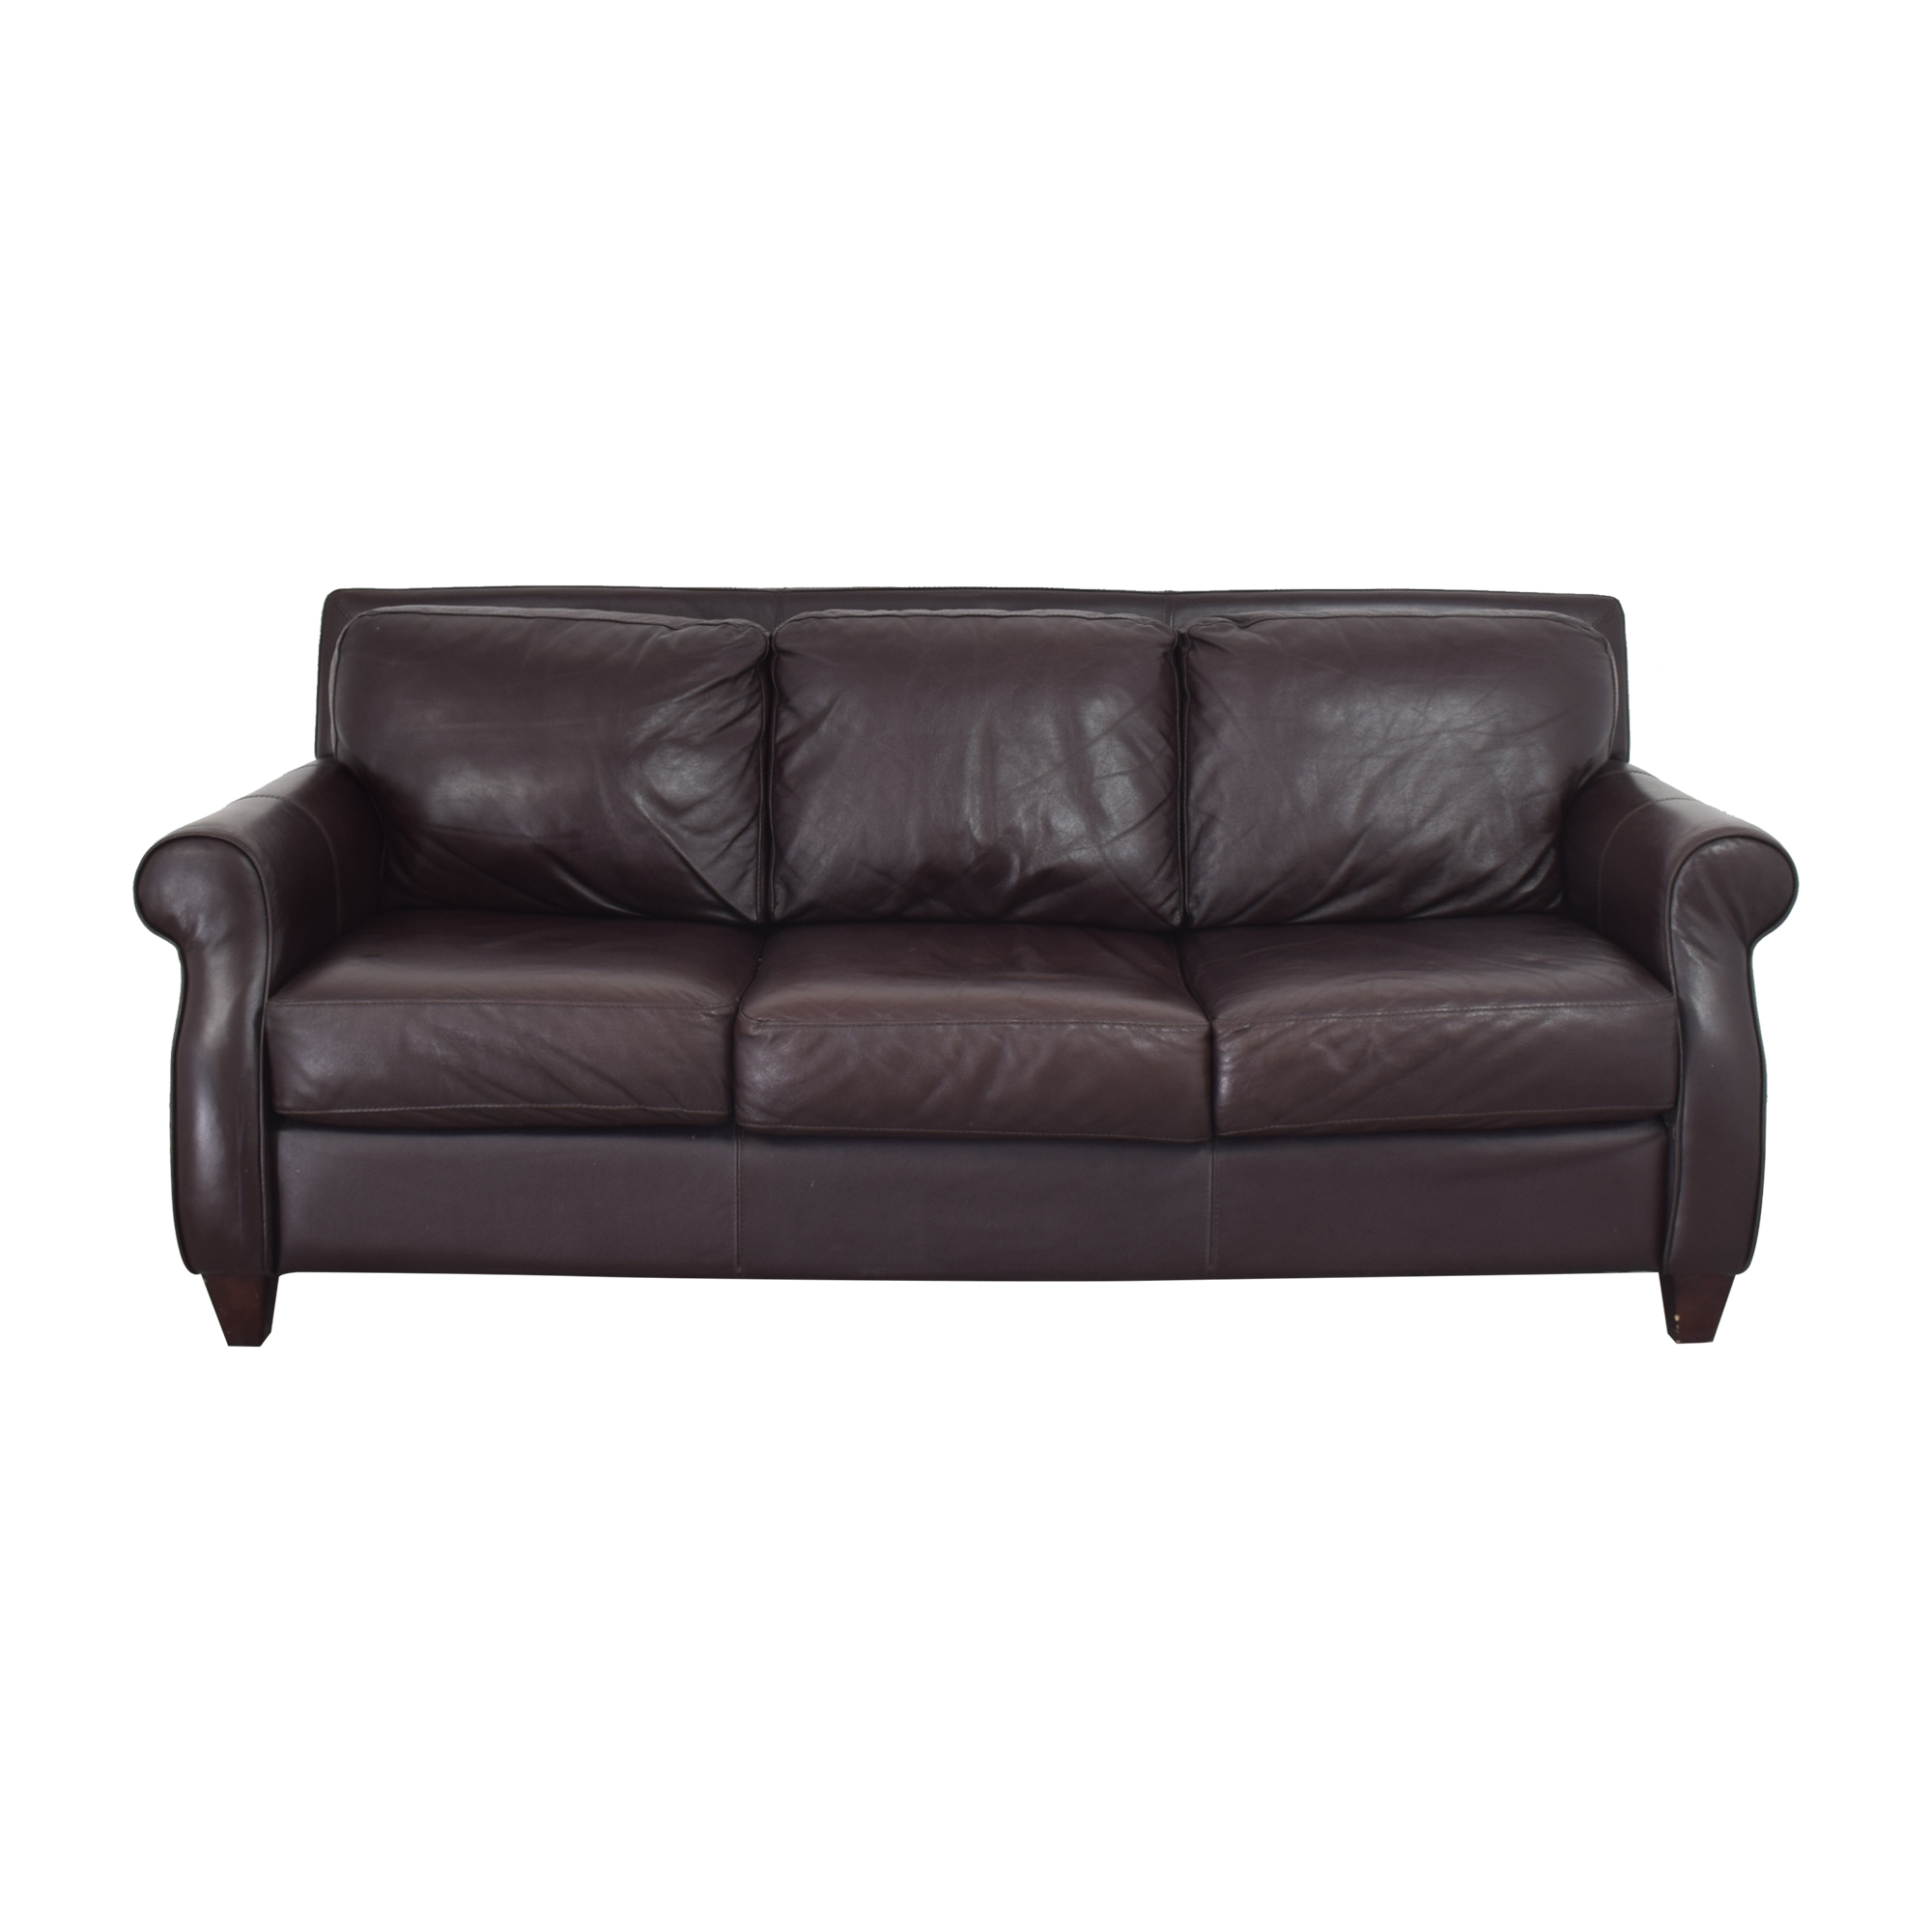 Raymour & Flanigan Raymour & Flanigan Three Cushion Sofa dark brown